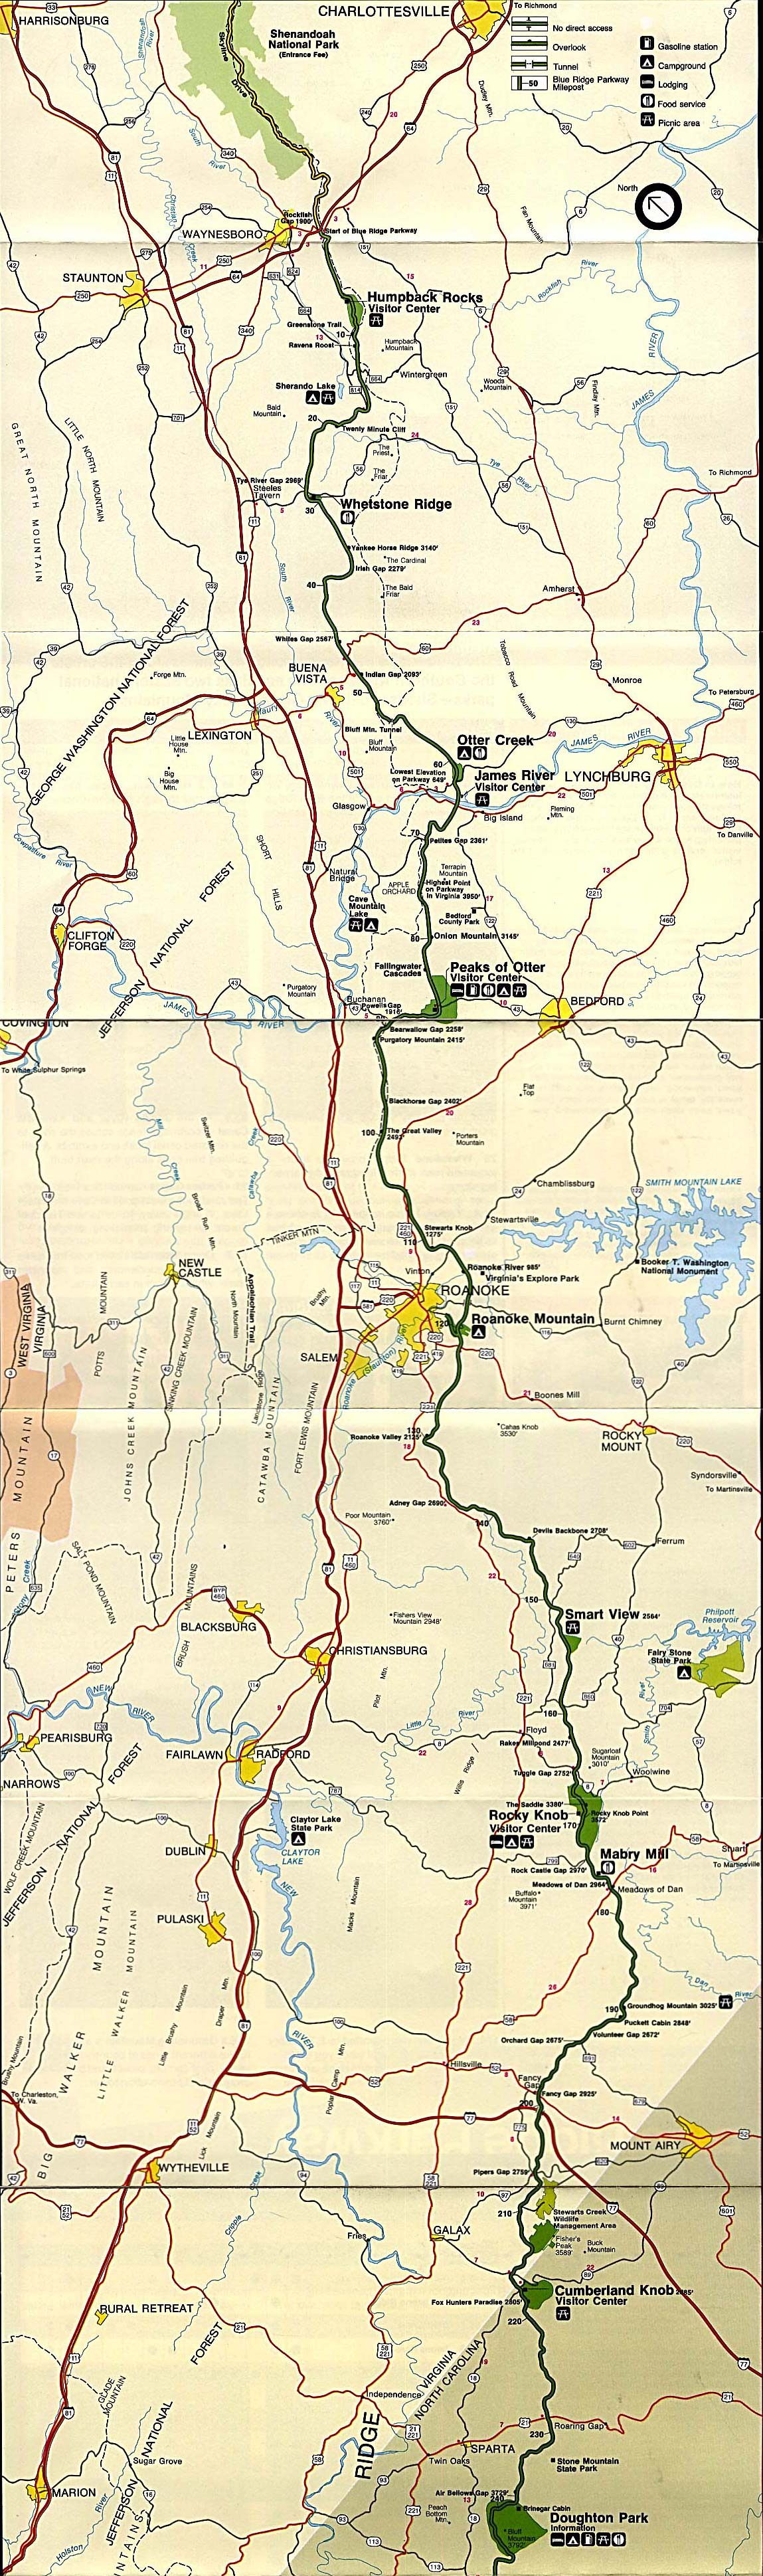 Maps of United States National Parks, Monuments and Historic Sites Blue Ridge Parkway - Northern Section [Virginia / North Carolina] (Park Map) 1995 (901K)